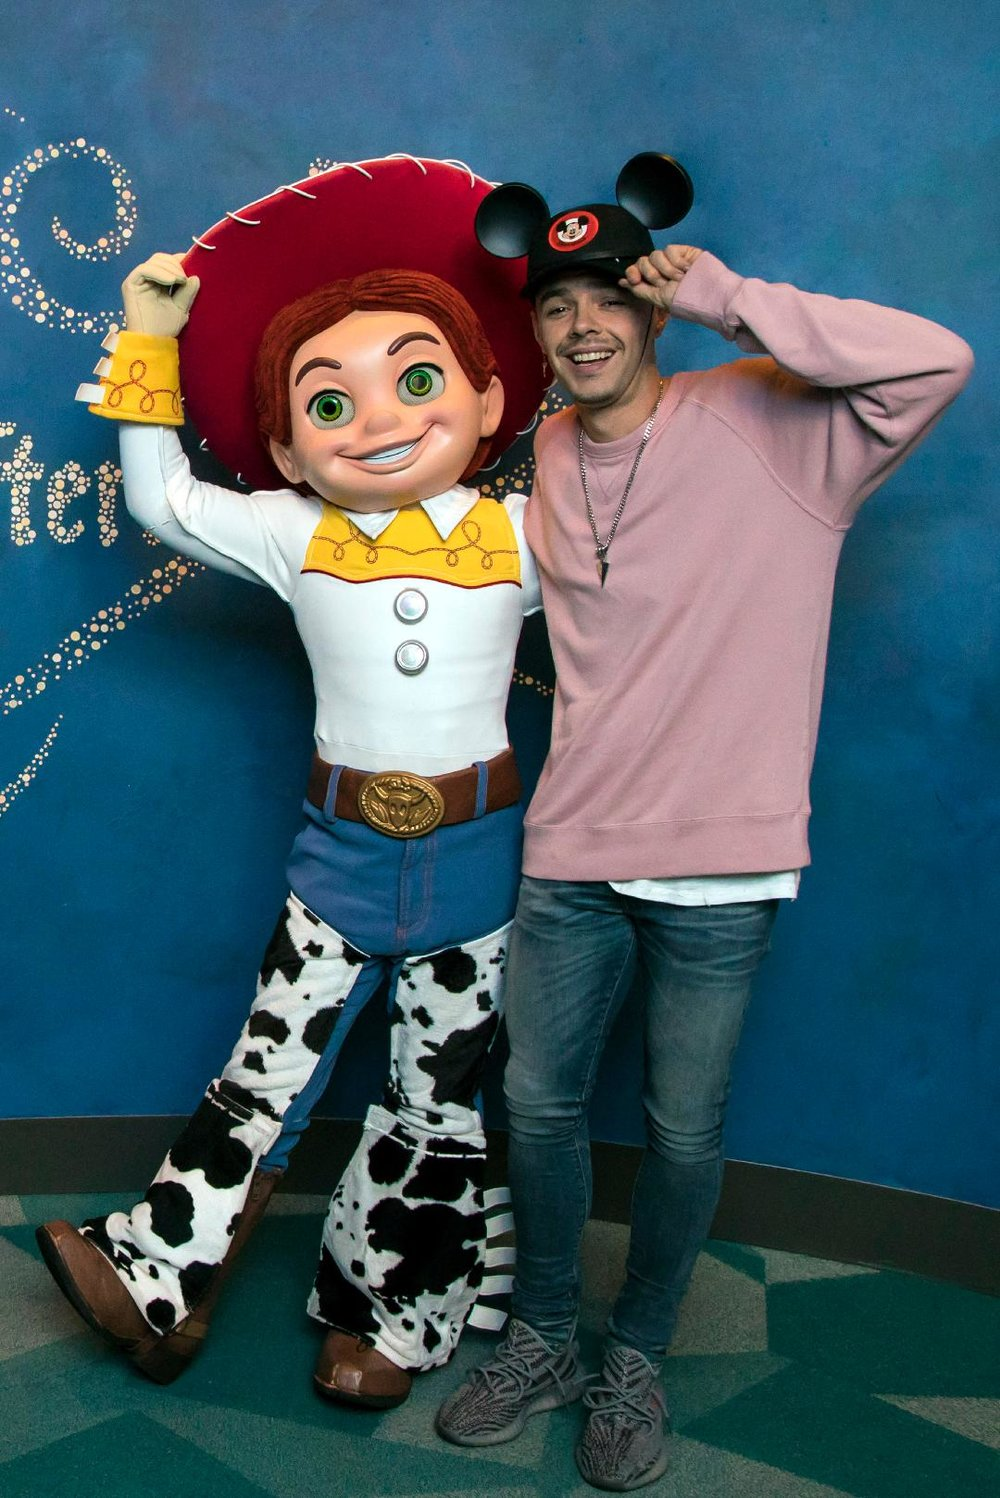 "Jesse Huerta visita Disneyland - Jesse Huerta of the Mexican pop duo Jesse y Joy visited the Happiest Place on Earth on Tuesday, March 13. Huerta posed for photos with his Pixar pal Jessie from Disney•Pixar's ""Toy Story 2"" and ""Toy Story 3"" in the Animation Academy at Disney California Adventure park. (Joshua Sudock/Disneyland Resort)ANAHEIM, Calif. (March 13, 2018) - Jesse Huerta of the Mexican pop duo Jesse y Joy visited the Happiest Place on Earth on Tuesday, March 13. In advance of the Pixar Fest celebration throughout the Disneyland Resort, Huerta admired a freshly sketched drawing of Miguel, from Disney•Pixar's ""Coco,"" at Off the Page in Disney California Adventure park. The first-ever Pixar Fest, a celebration of friendship and beyond, is coming to the Disneyland Resort April 13 through Sept. 3, 2018. (Joshua Sudock/Disneyland Resort)"